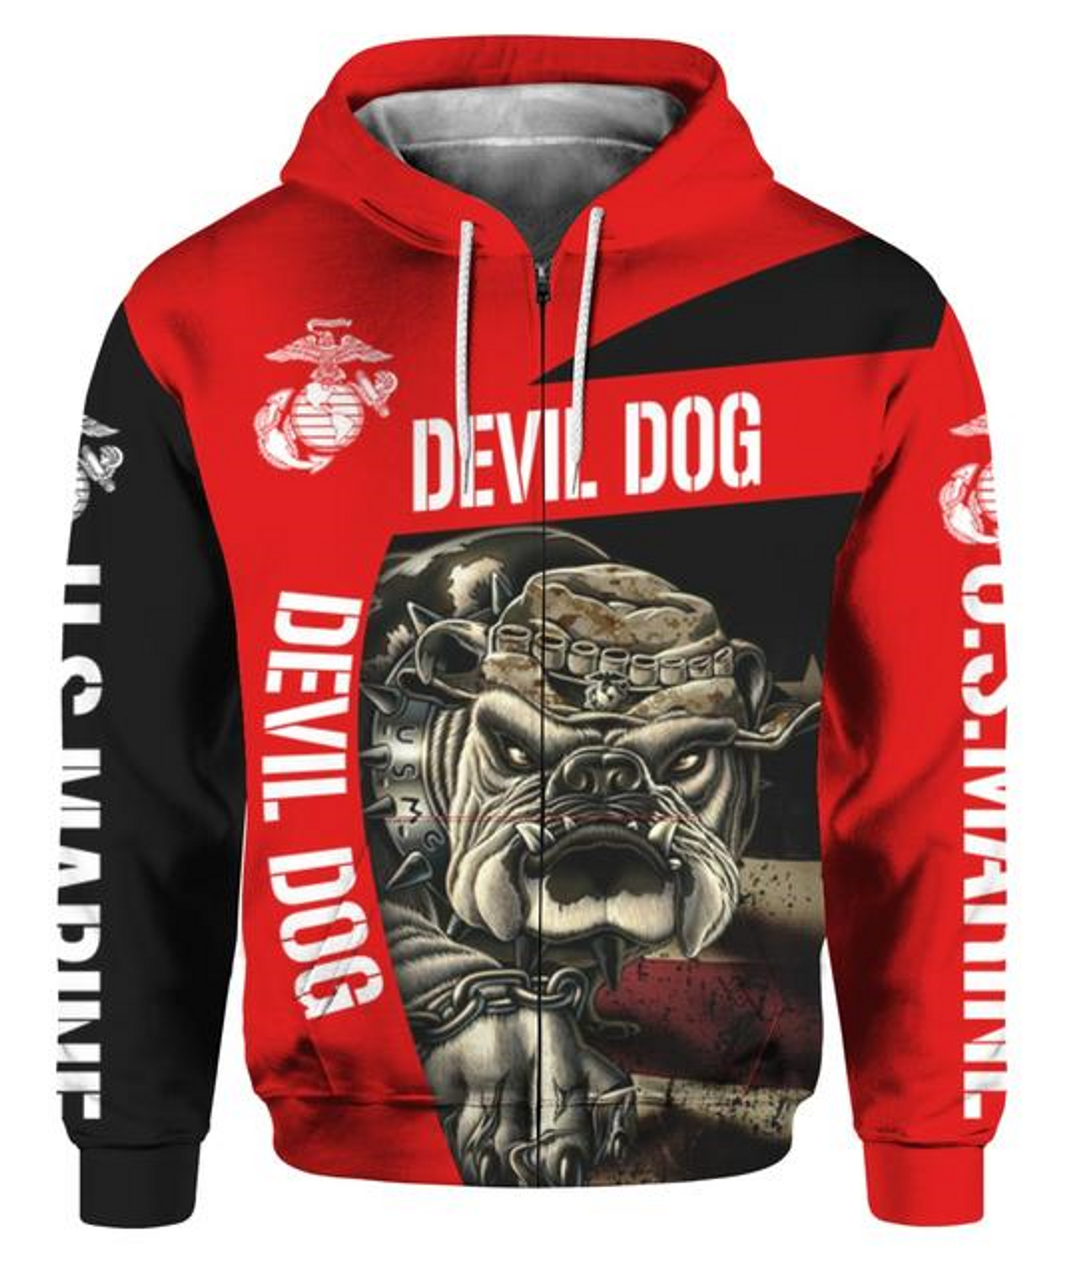 **(OFFICIAL-U.S.MARINE-VETERANS-ZIPPERED-HOODIES/CLASSIC-MARINE-COMBAT-DEVIL-DOG & CLASSIC-OFFICIAL-MARINES-COLORS/OFFICIAL-MARINES-GRAPHIC-LOGOS/CUSTOM-3D-DETAILED-GRAPHIC-PRINTED-DESIGN/WARM-PREMIUM-U.S.MARINE-VETERANS-ZIPPERED-HOODIES)**